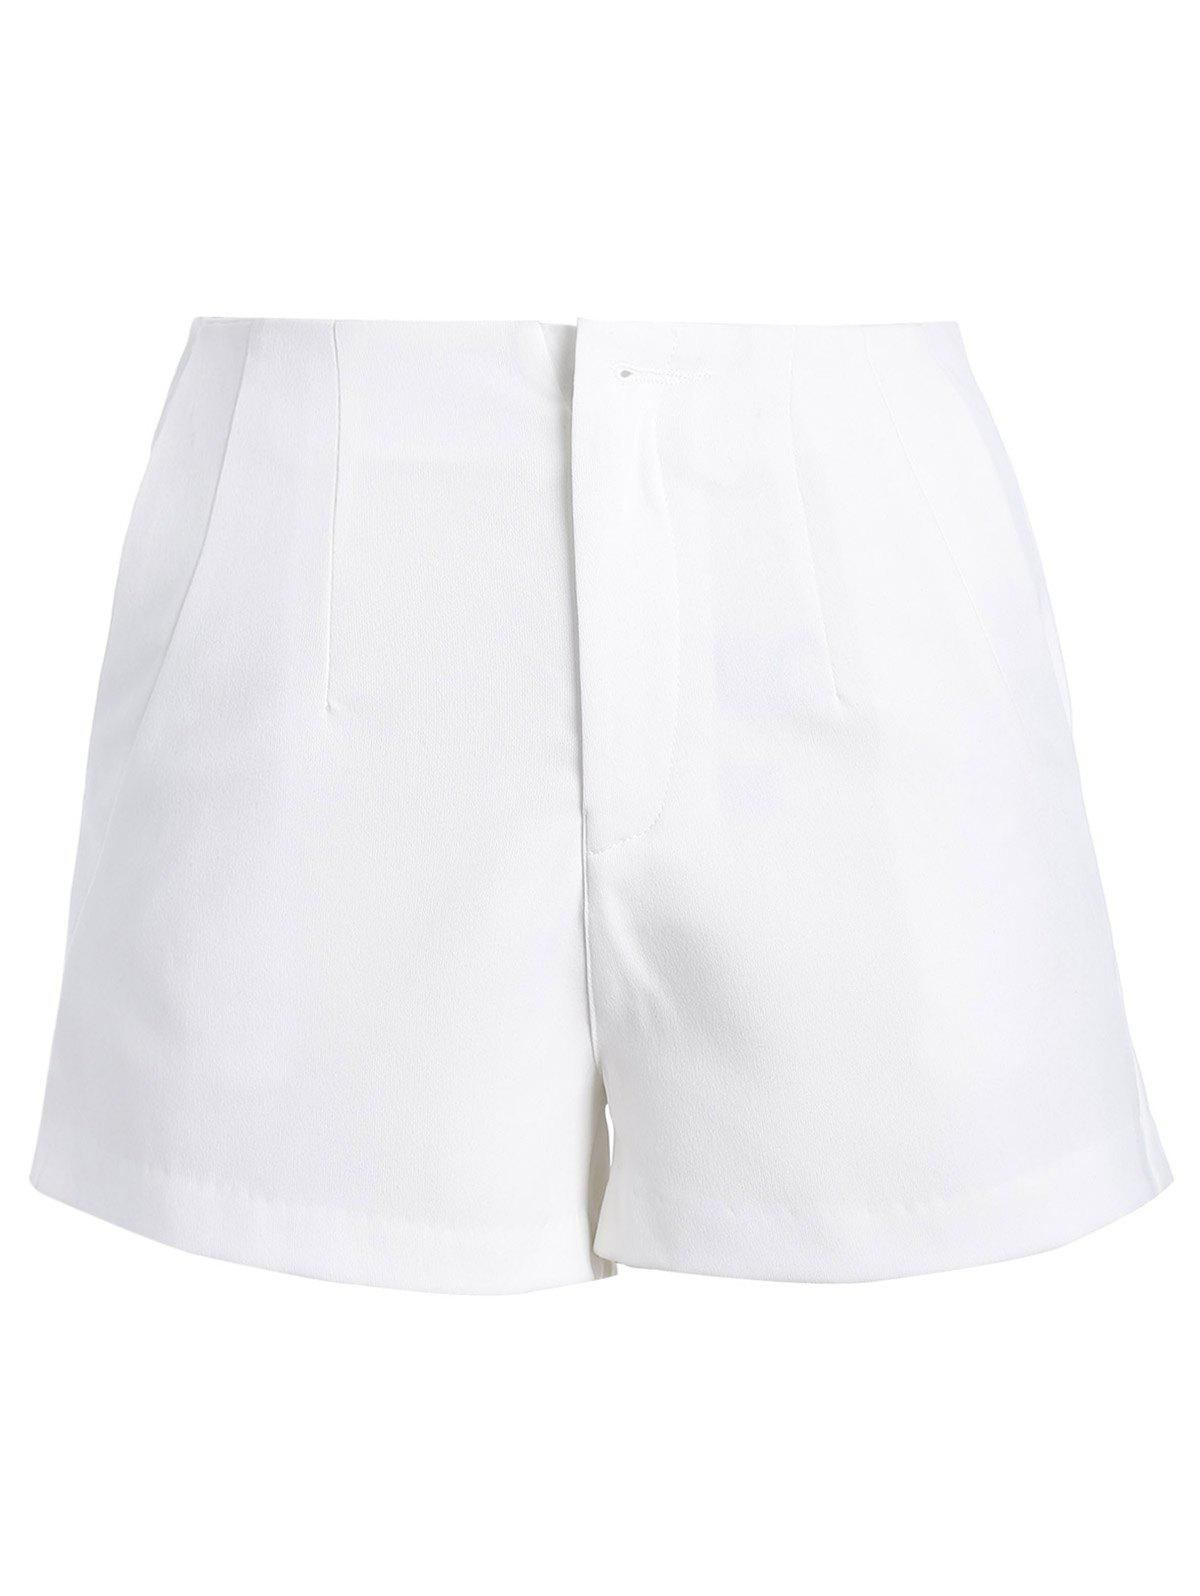 Stylish Women's Solid Color Zipper Fly Shorts